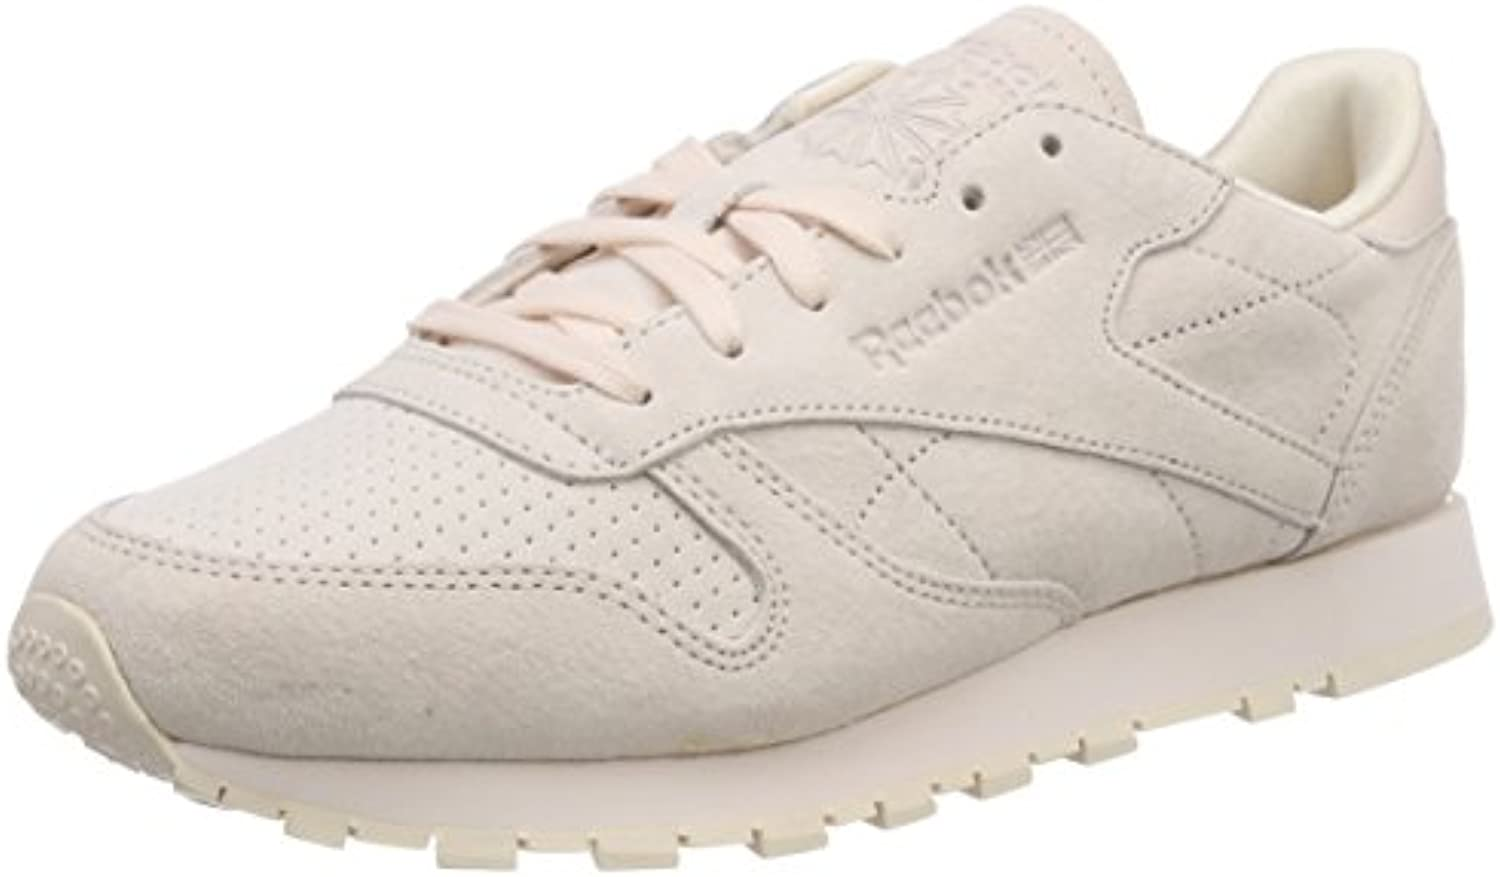 Reebok CL Leather Nbk W Calzado